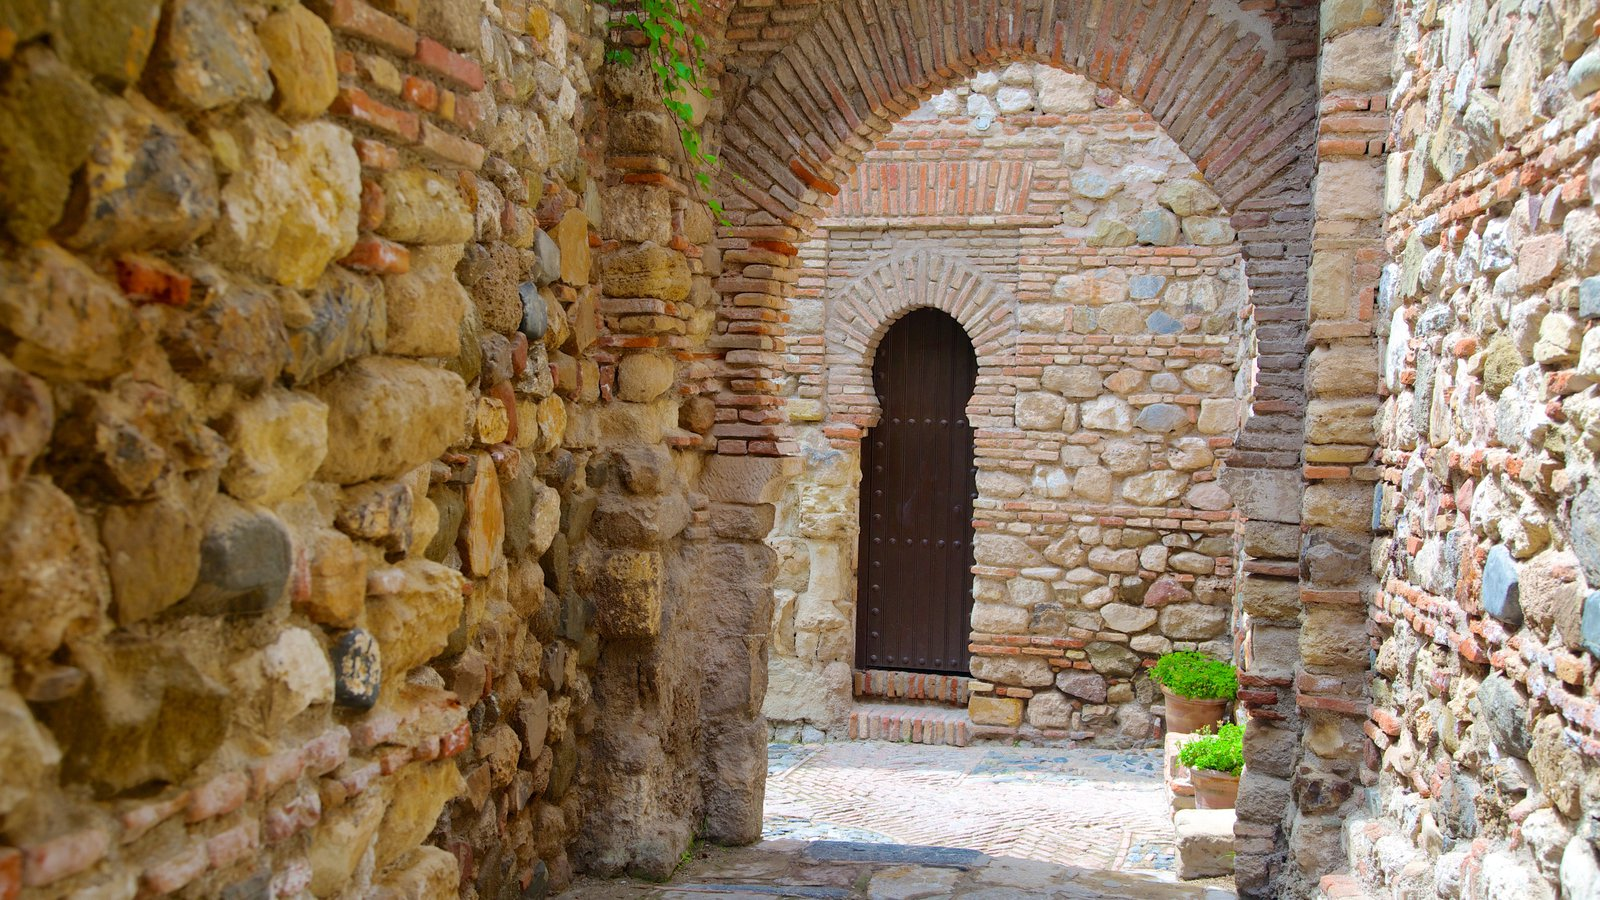 Alcazaba which includes a castle and heritage architecture